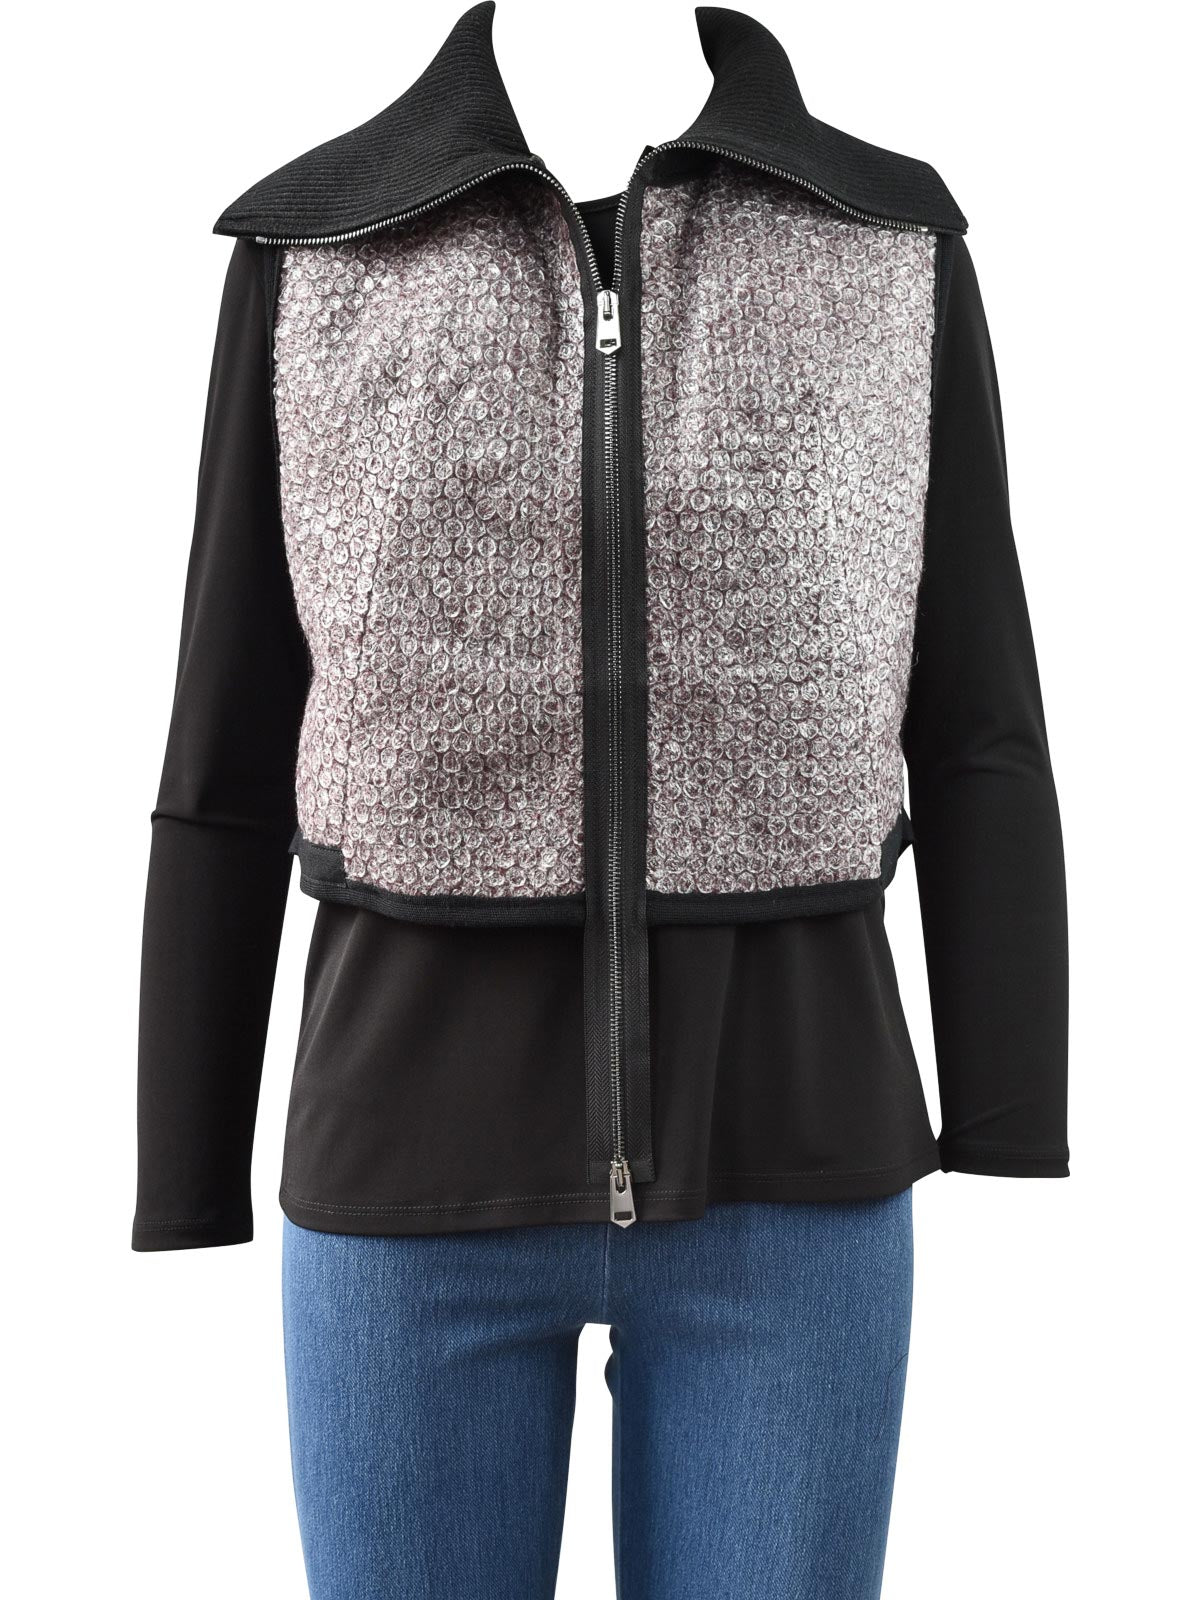 NY77 Short Zip Vest, Bubble Wrap